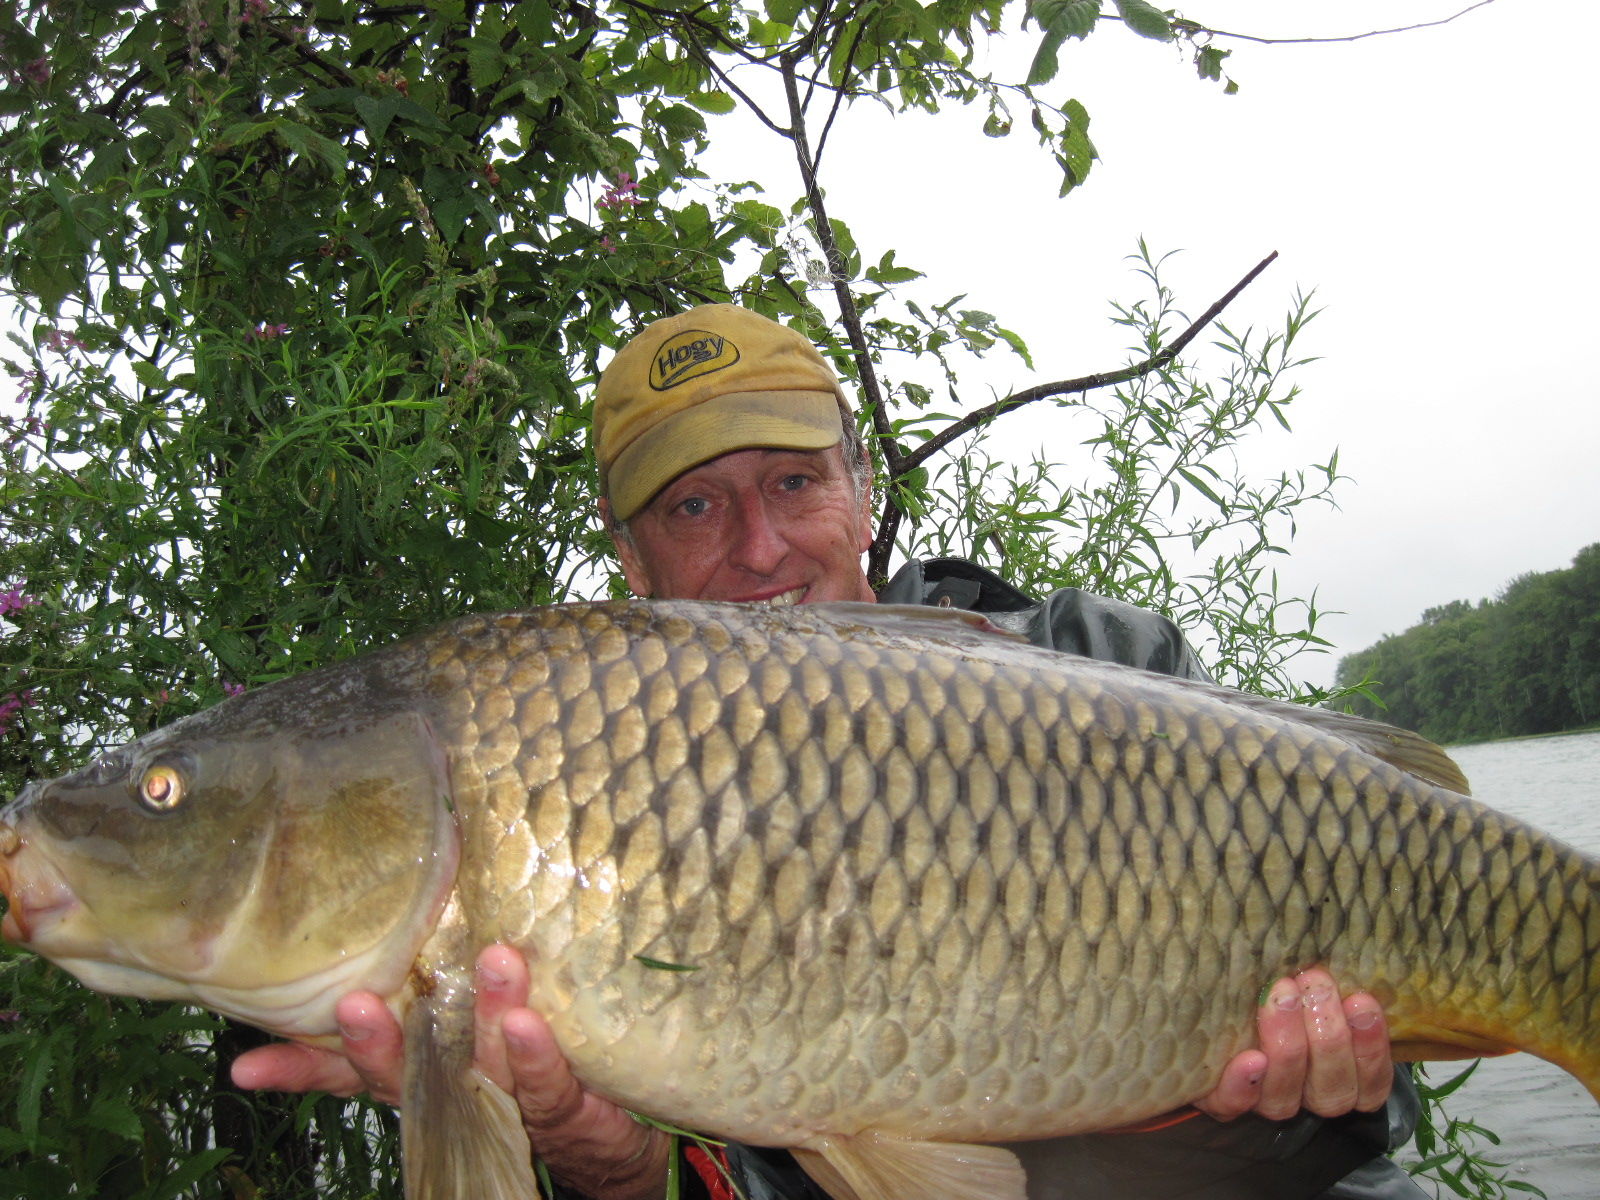 rhode island carp fishing: once again, nasty weather lights up, Reel Combo